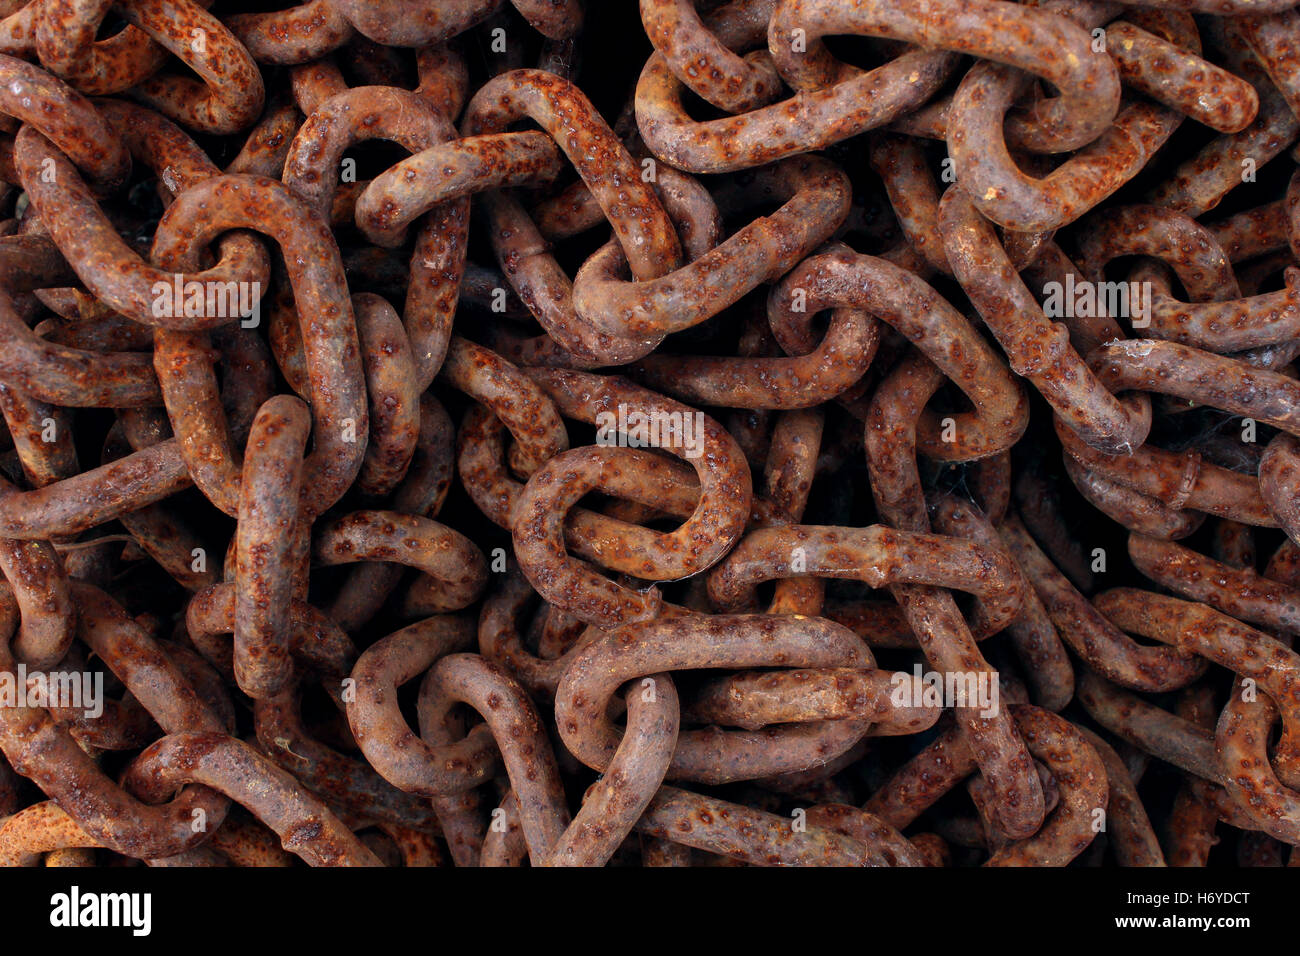 Rusted old iron chains background as a stack of oxidized decaying metal links as an abstract symbol of industrial - Stock Image